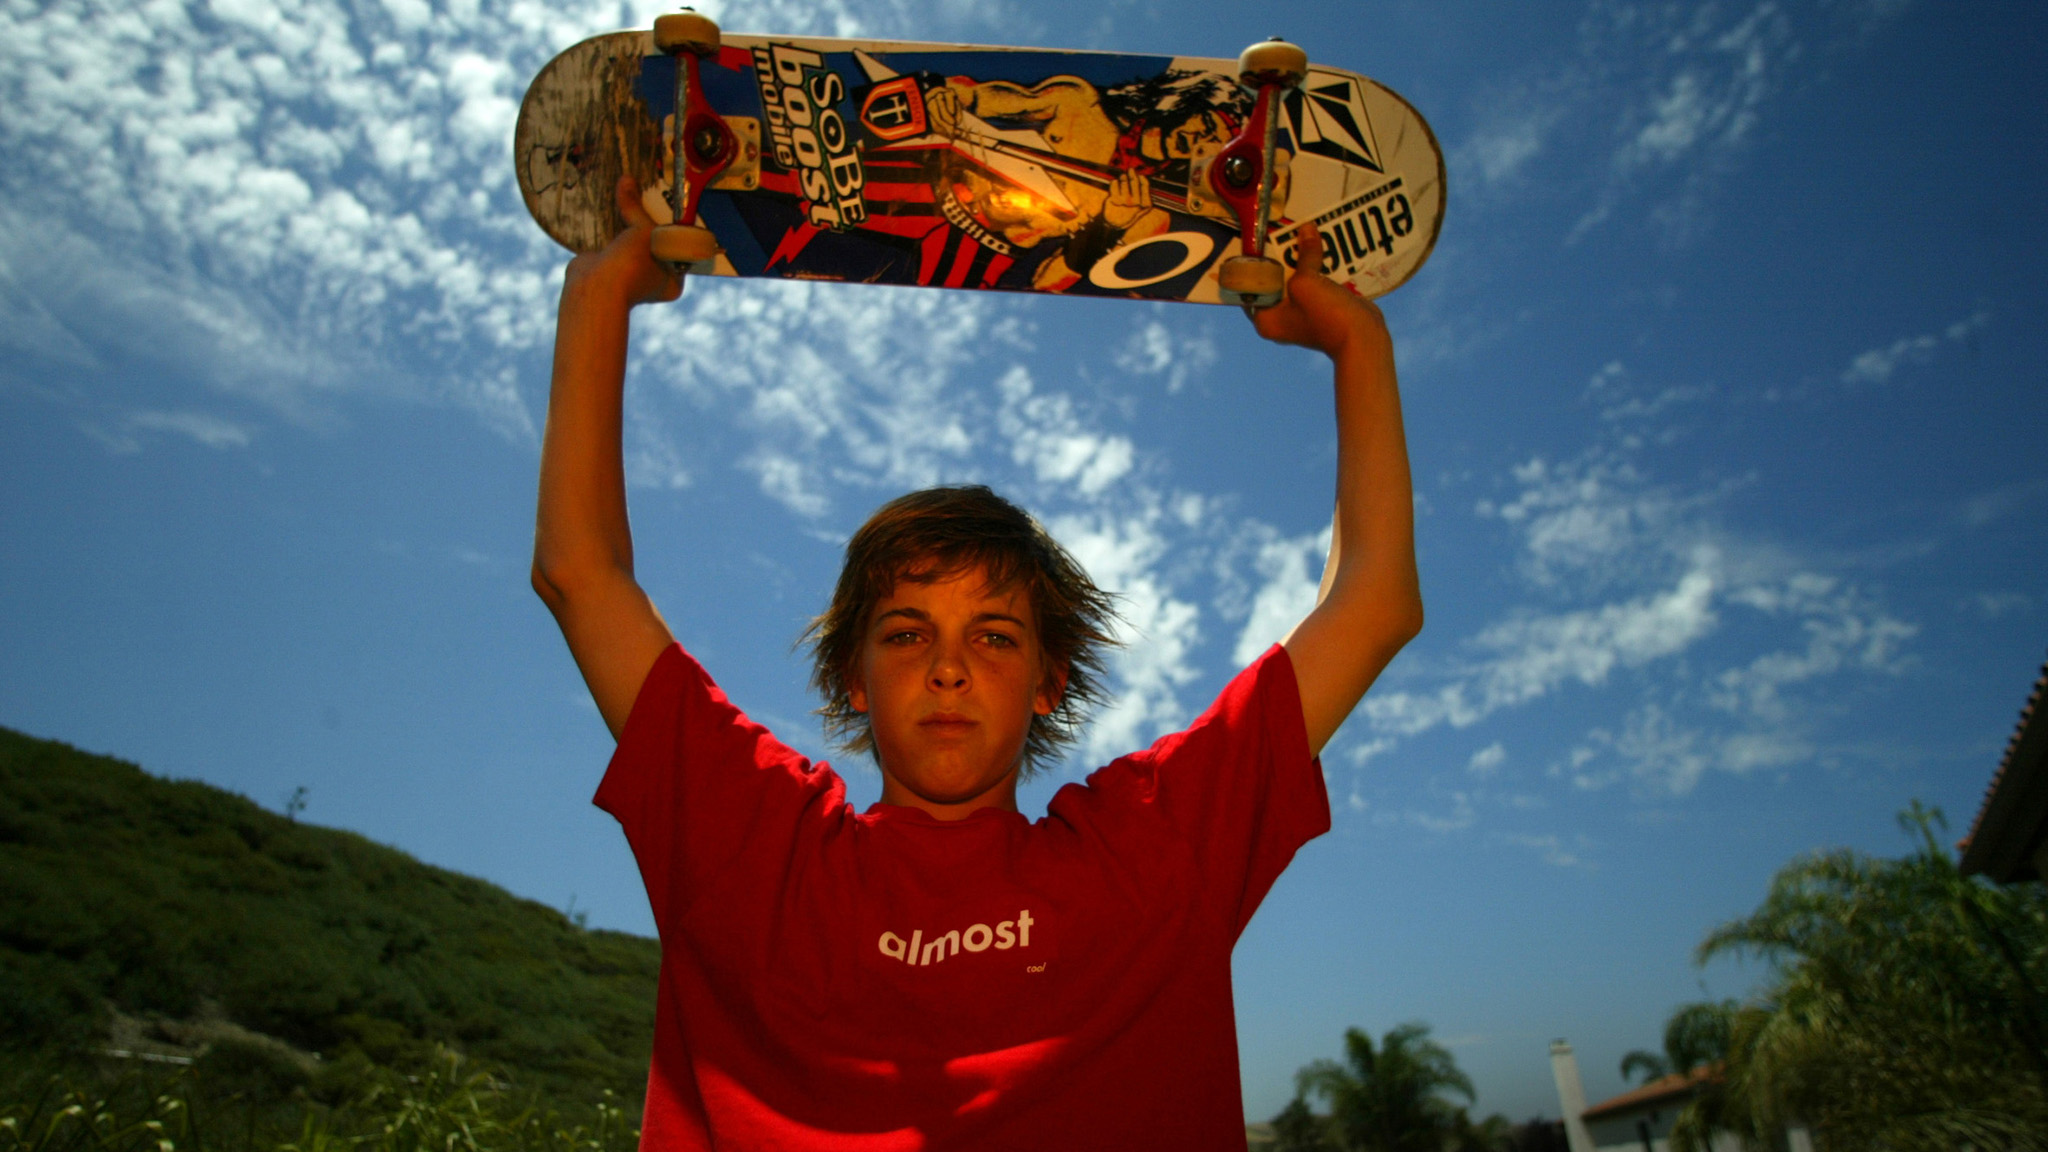 From 2007-2008, Sheckler starred on the MTV show 'Life Of Ryan,' but the demands of fame ultimately overshadowed his love for skateboarding.